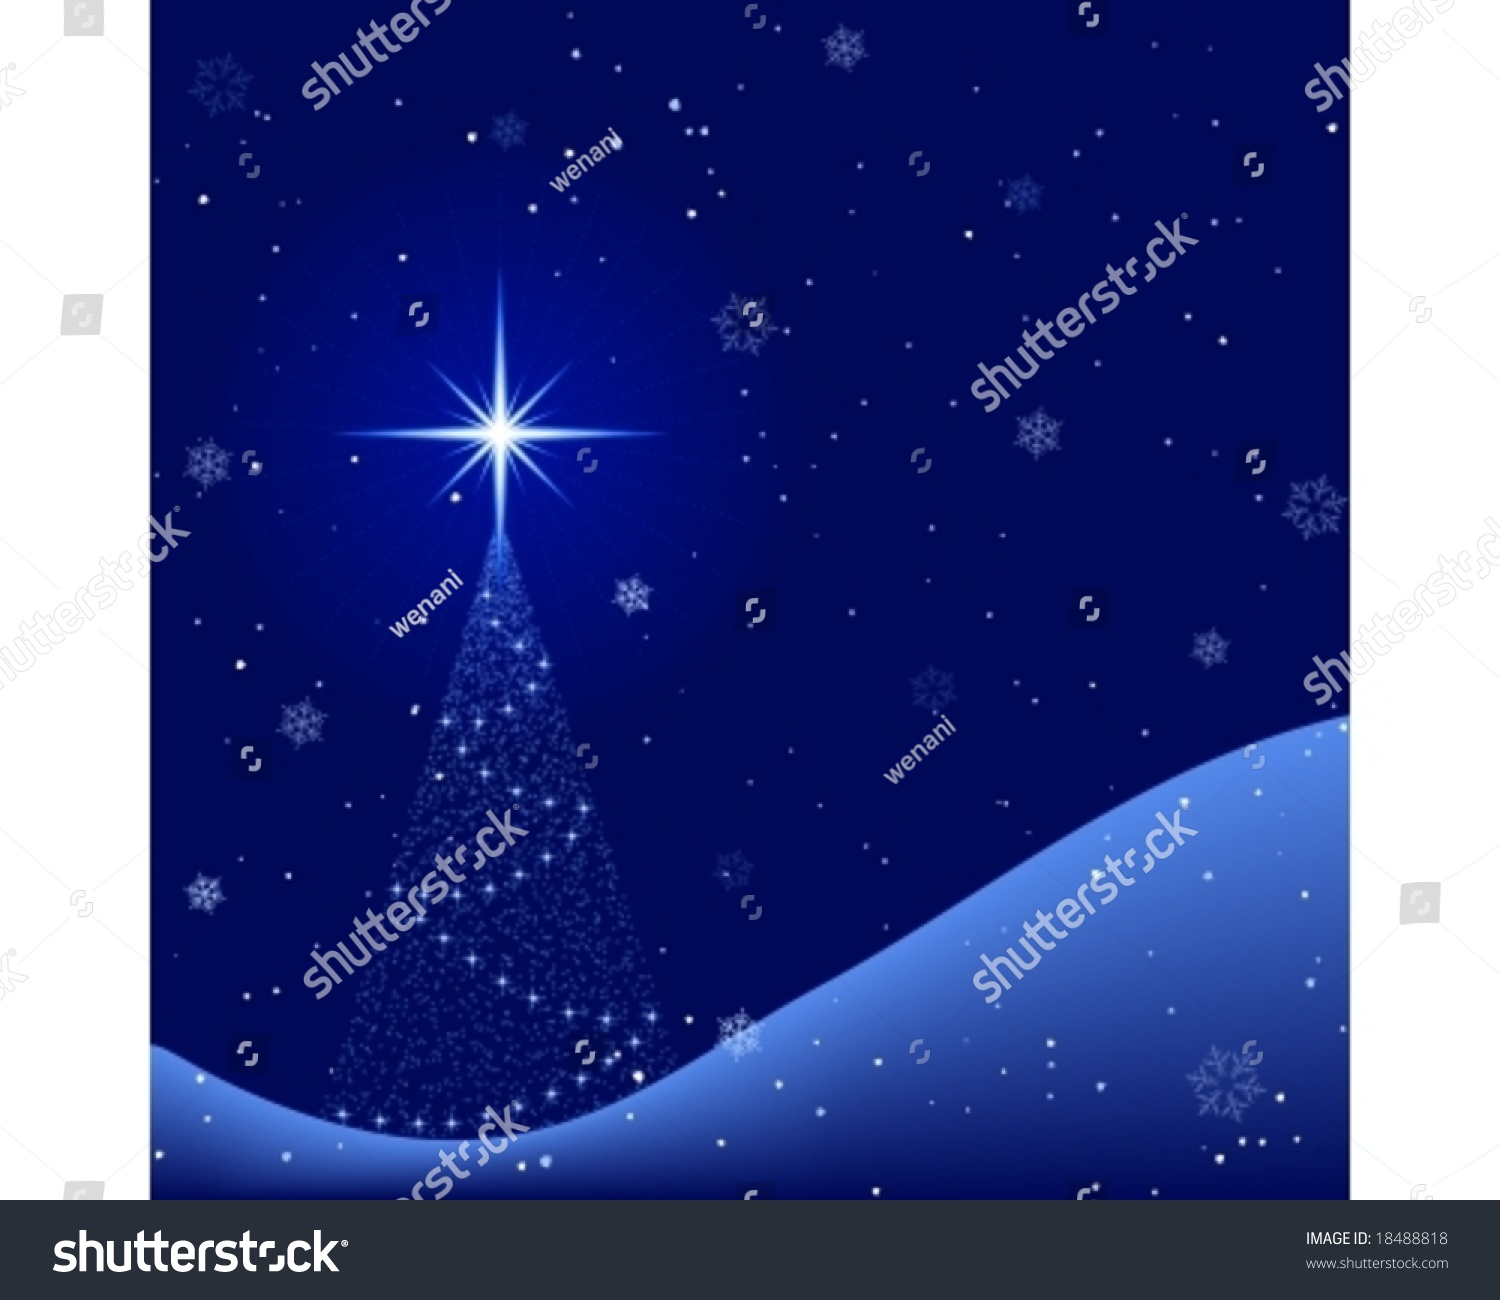 Christmas Tree Scenery Part - 33: Square Blue Christmas Card Showing A Peaceful Winter Night Scenery With A Christmas  Tree And Snowfall. Stock Vector Illustration 18488818 : Shutterstock